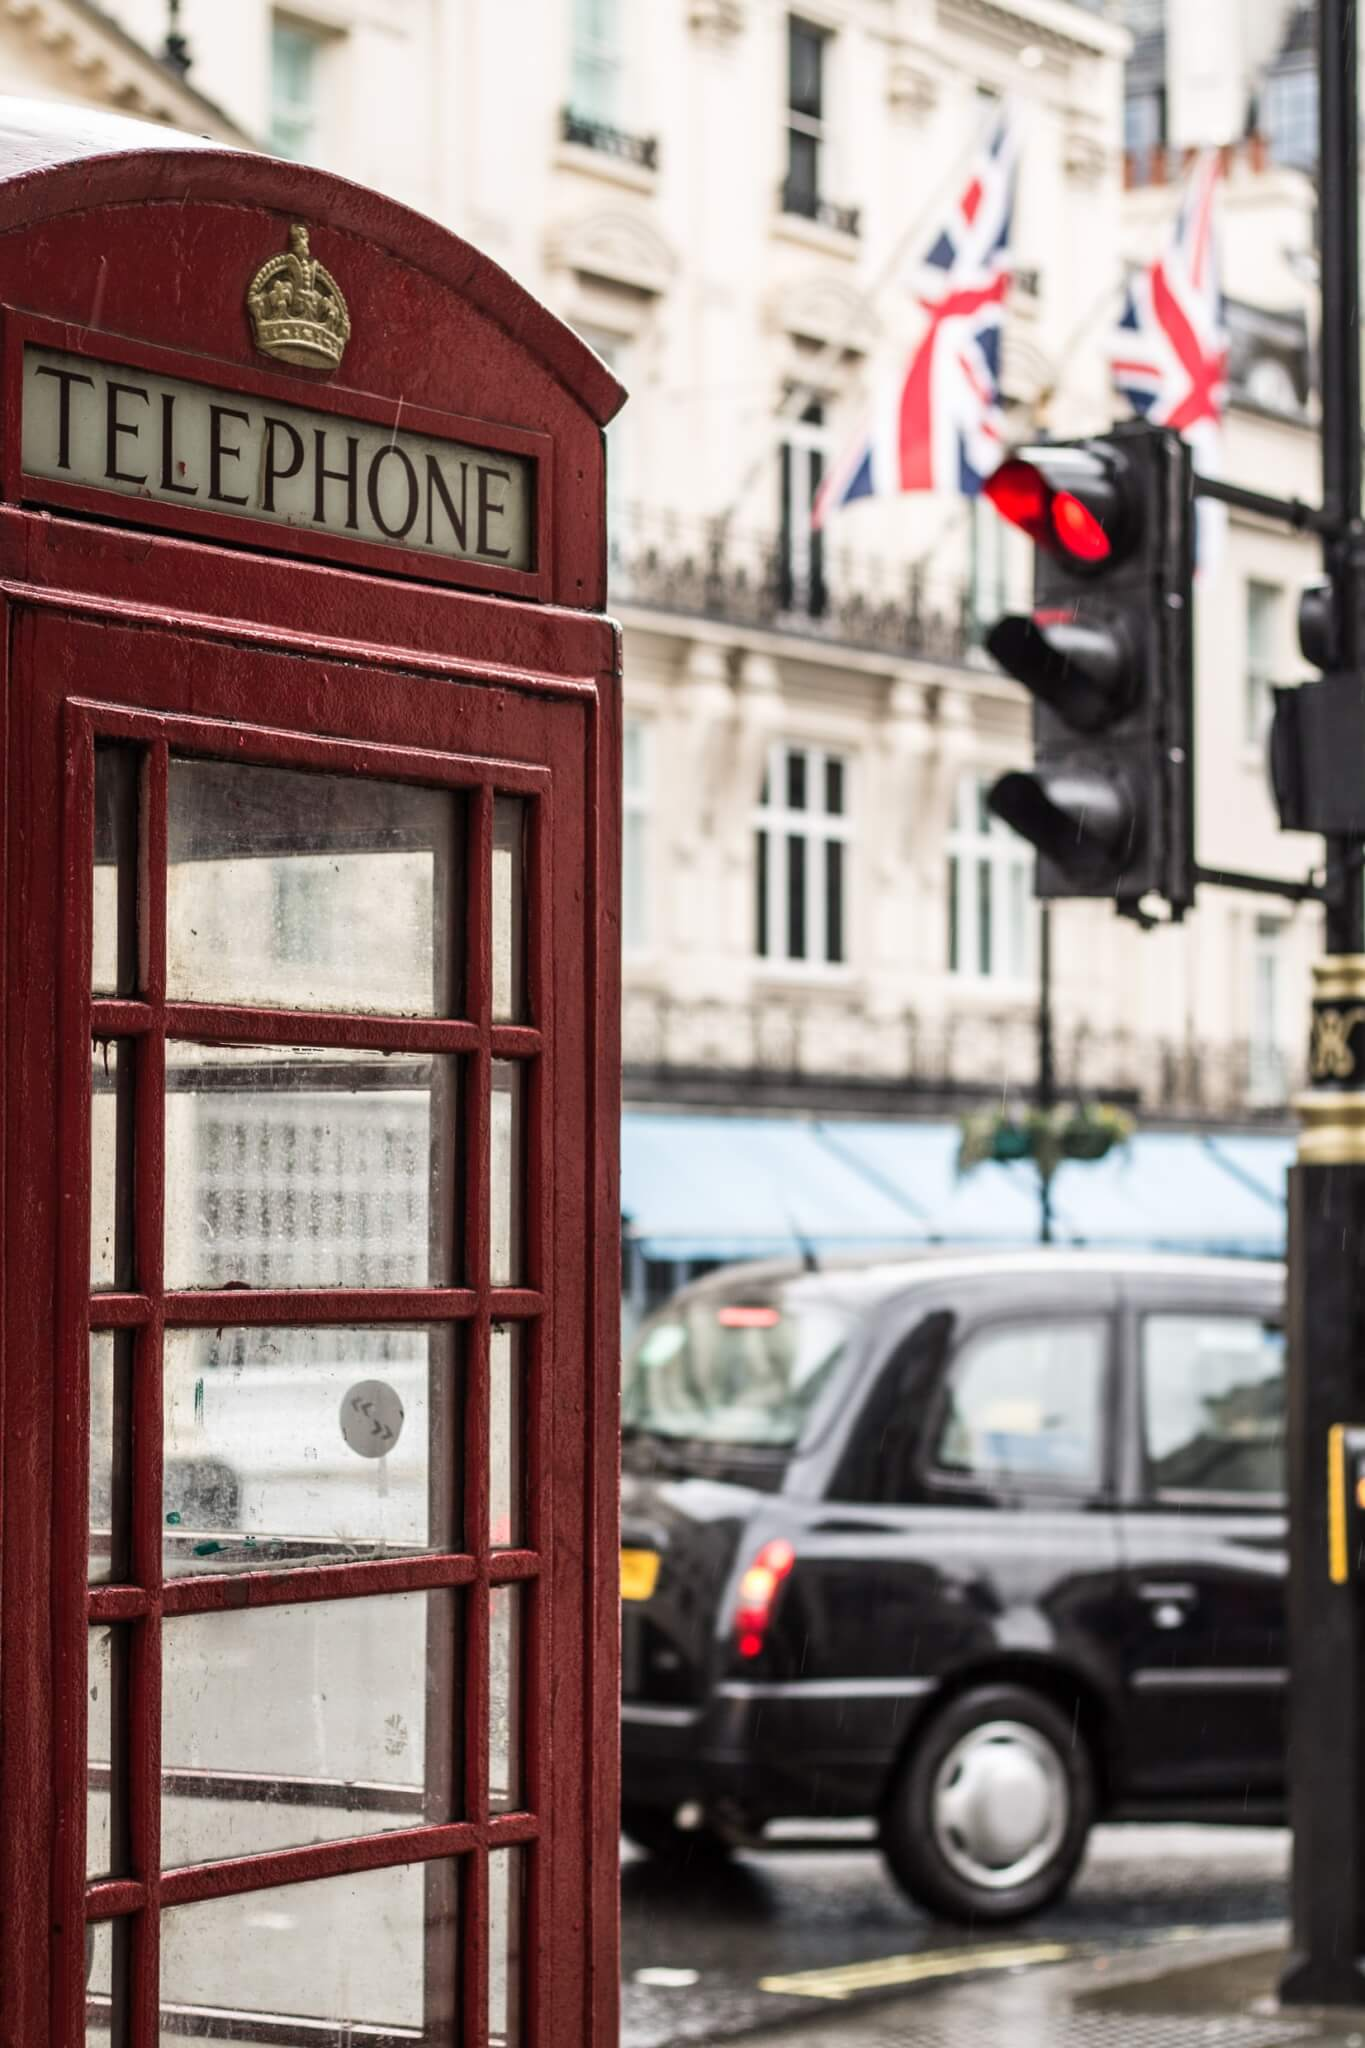 Secondments from the UK to the EU post-Brexit – how has the position changed?